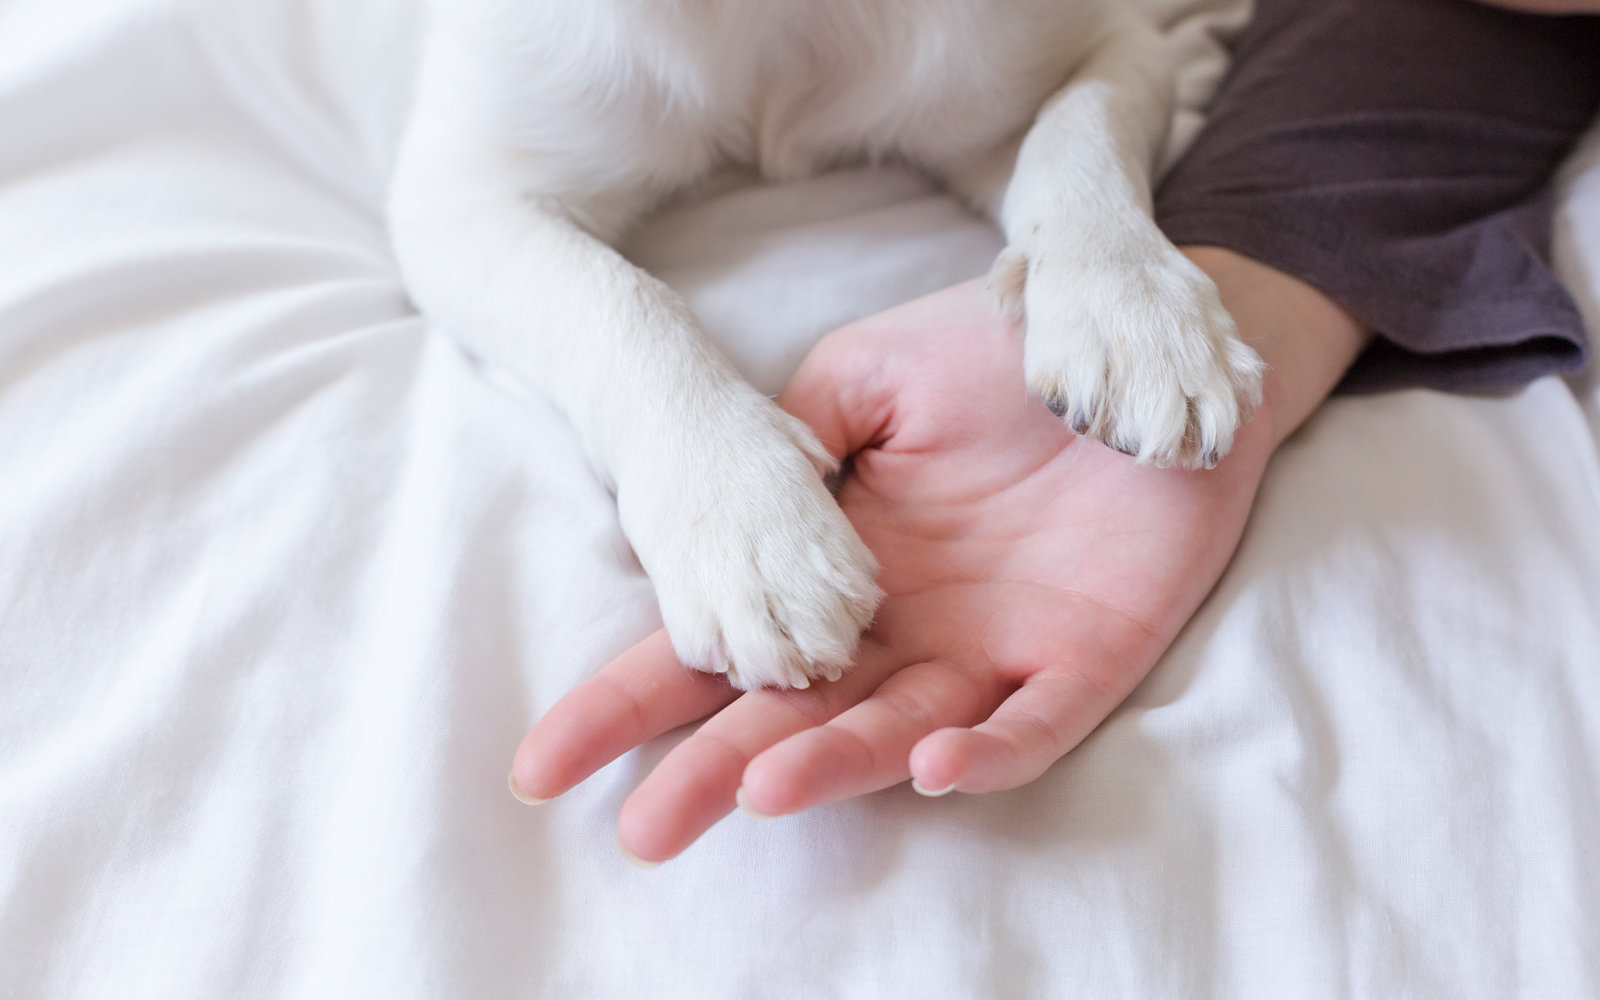 Pet dog's paw